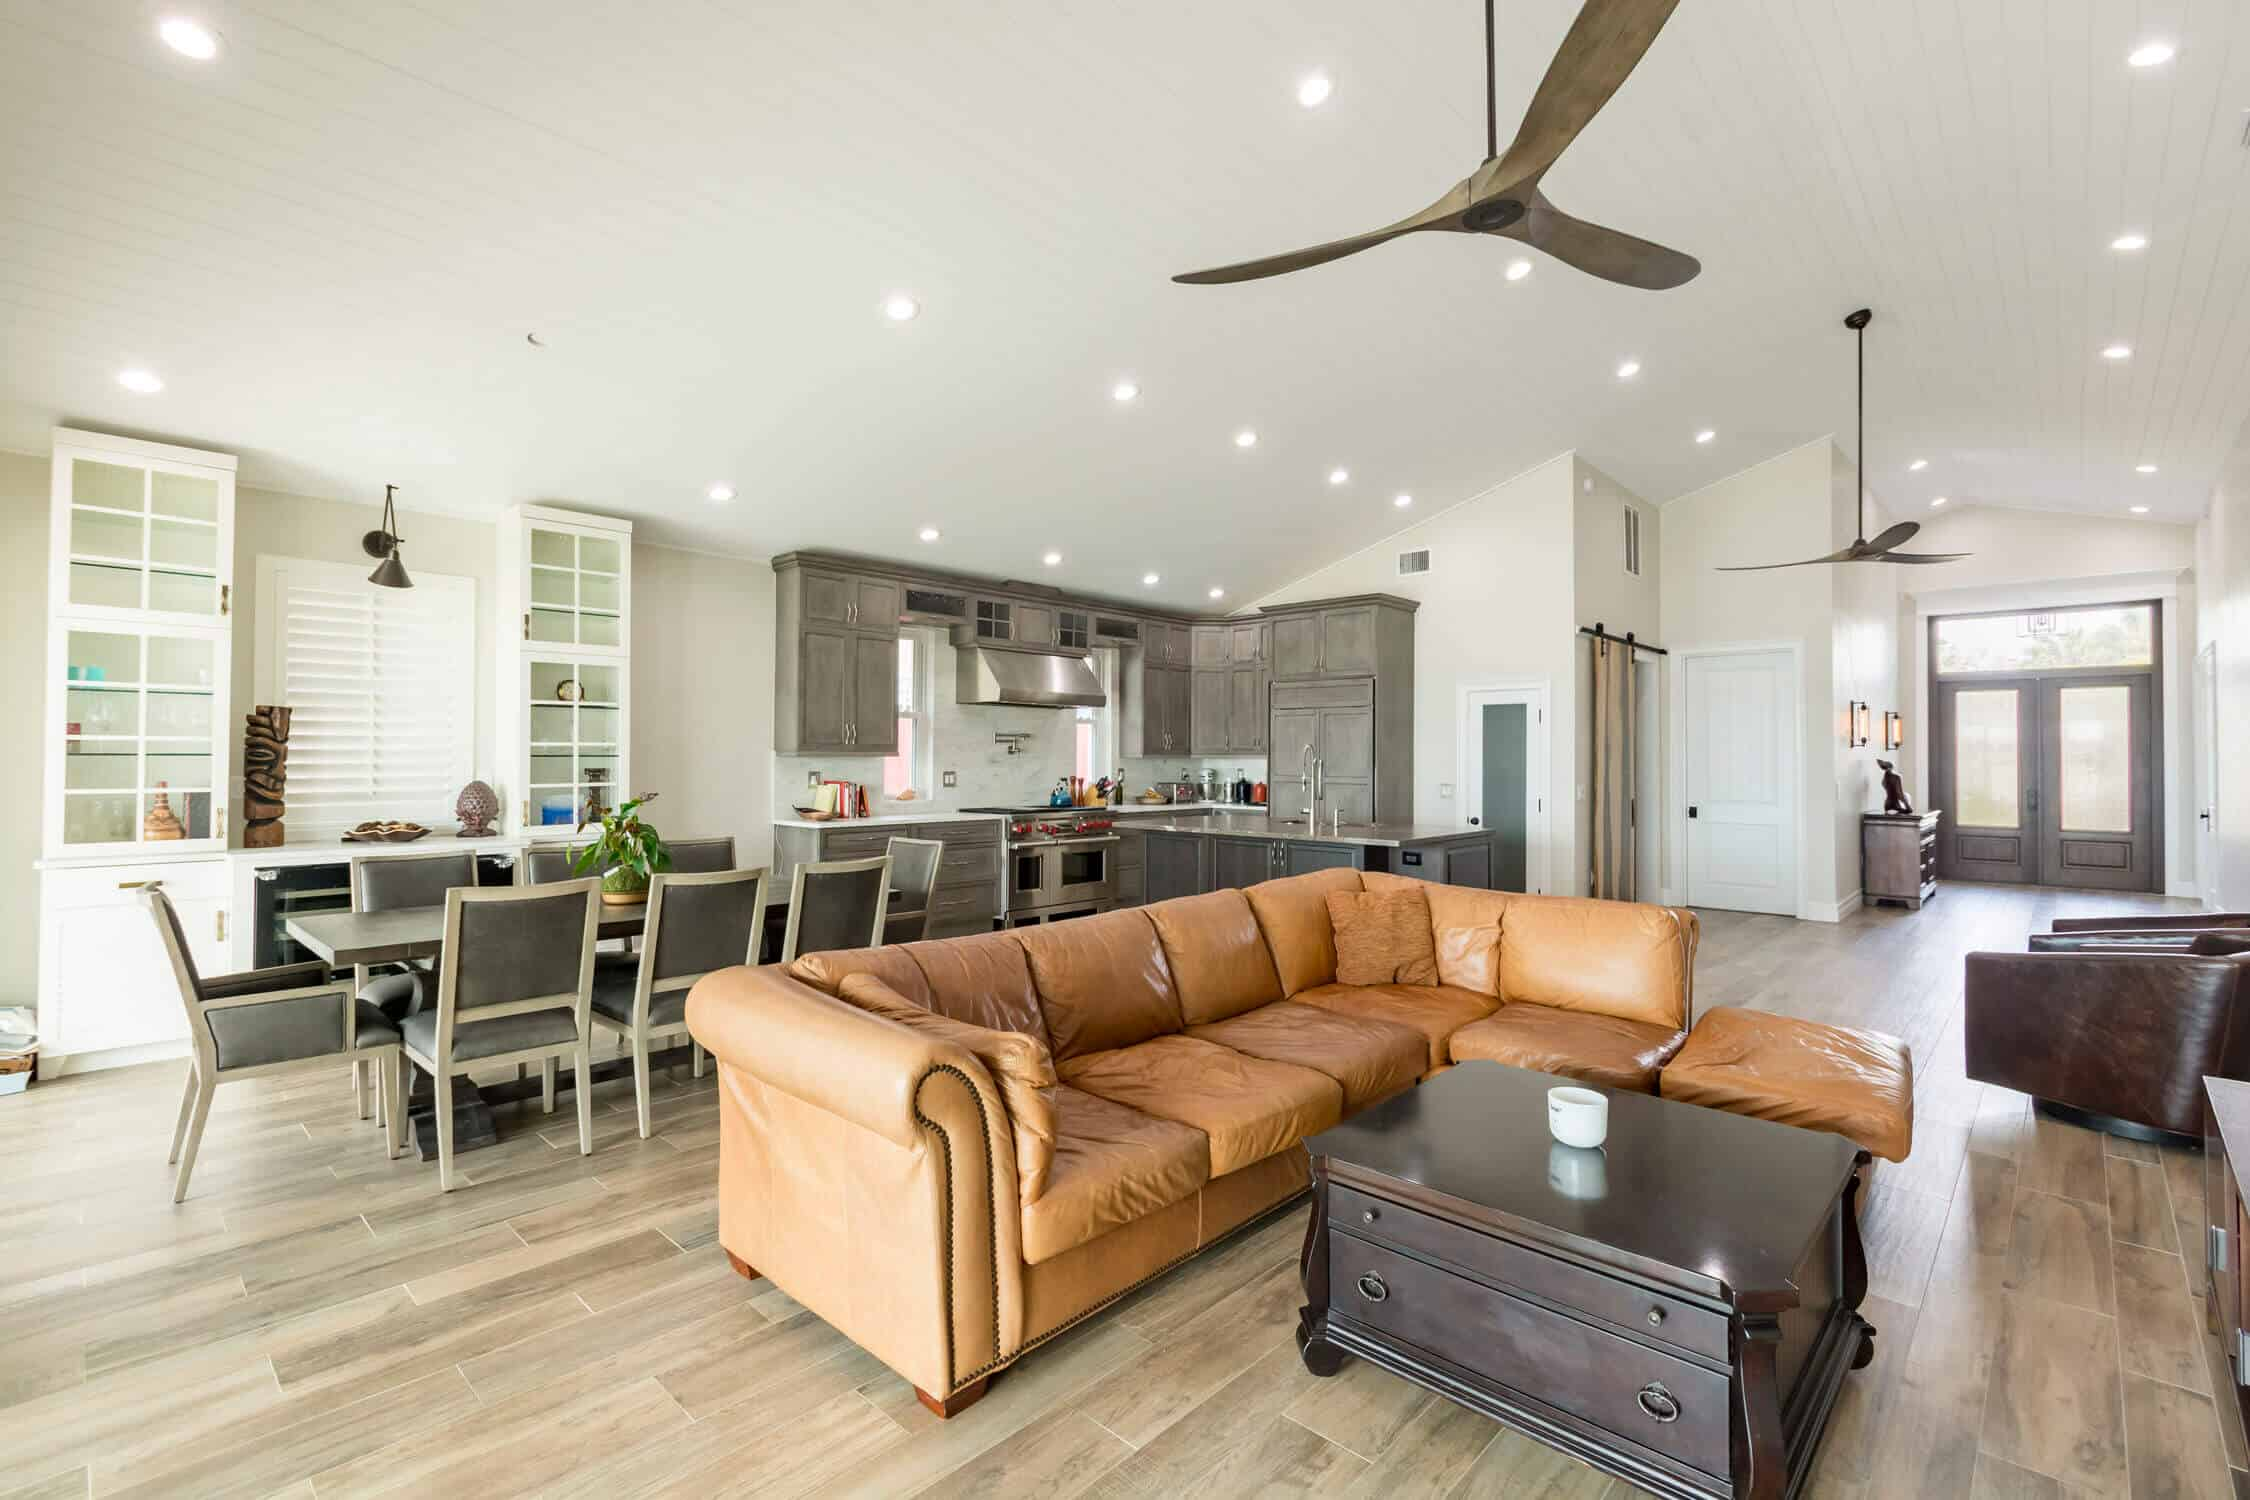 Remodeled Home in Living Room